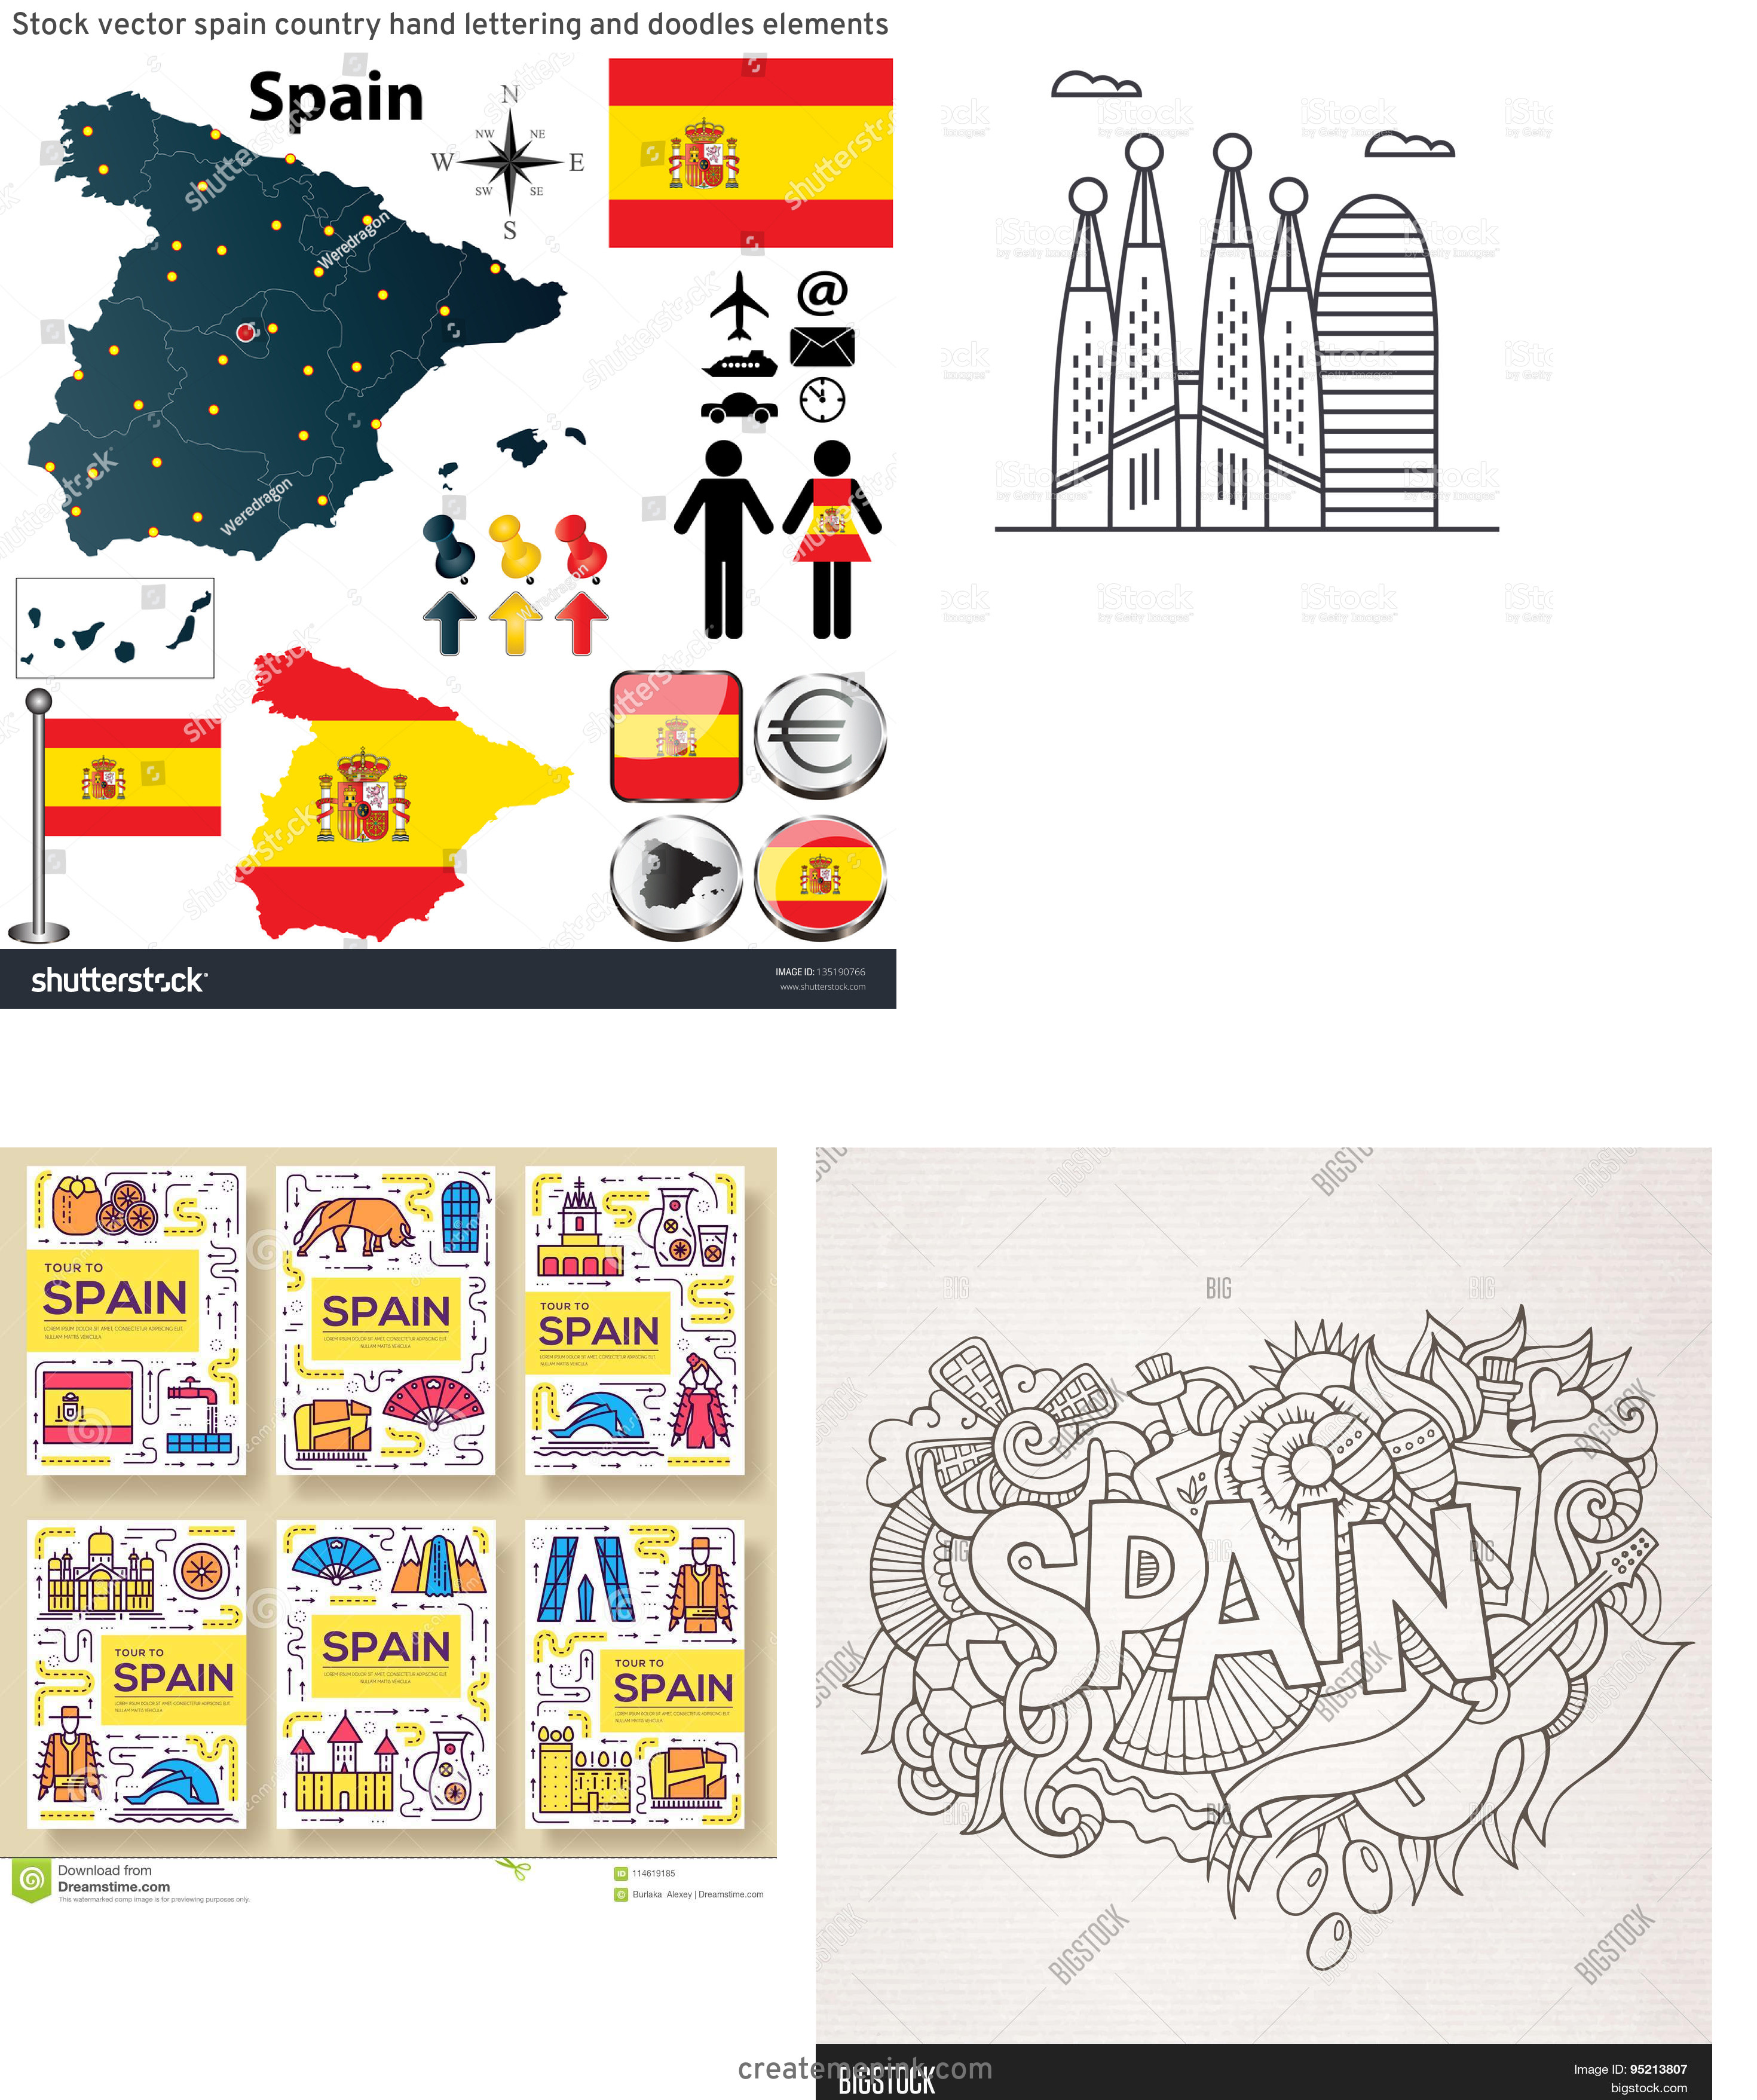 Spain Country Vectors Line: Stock Vector Spain Country Hand Lettering And Doodles Elements